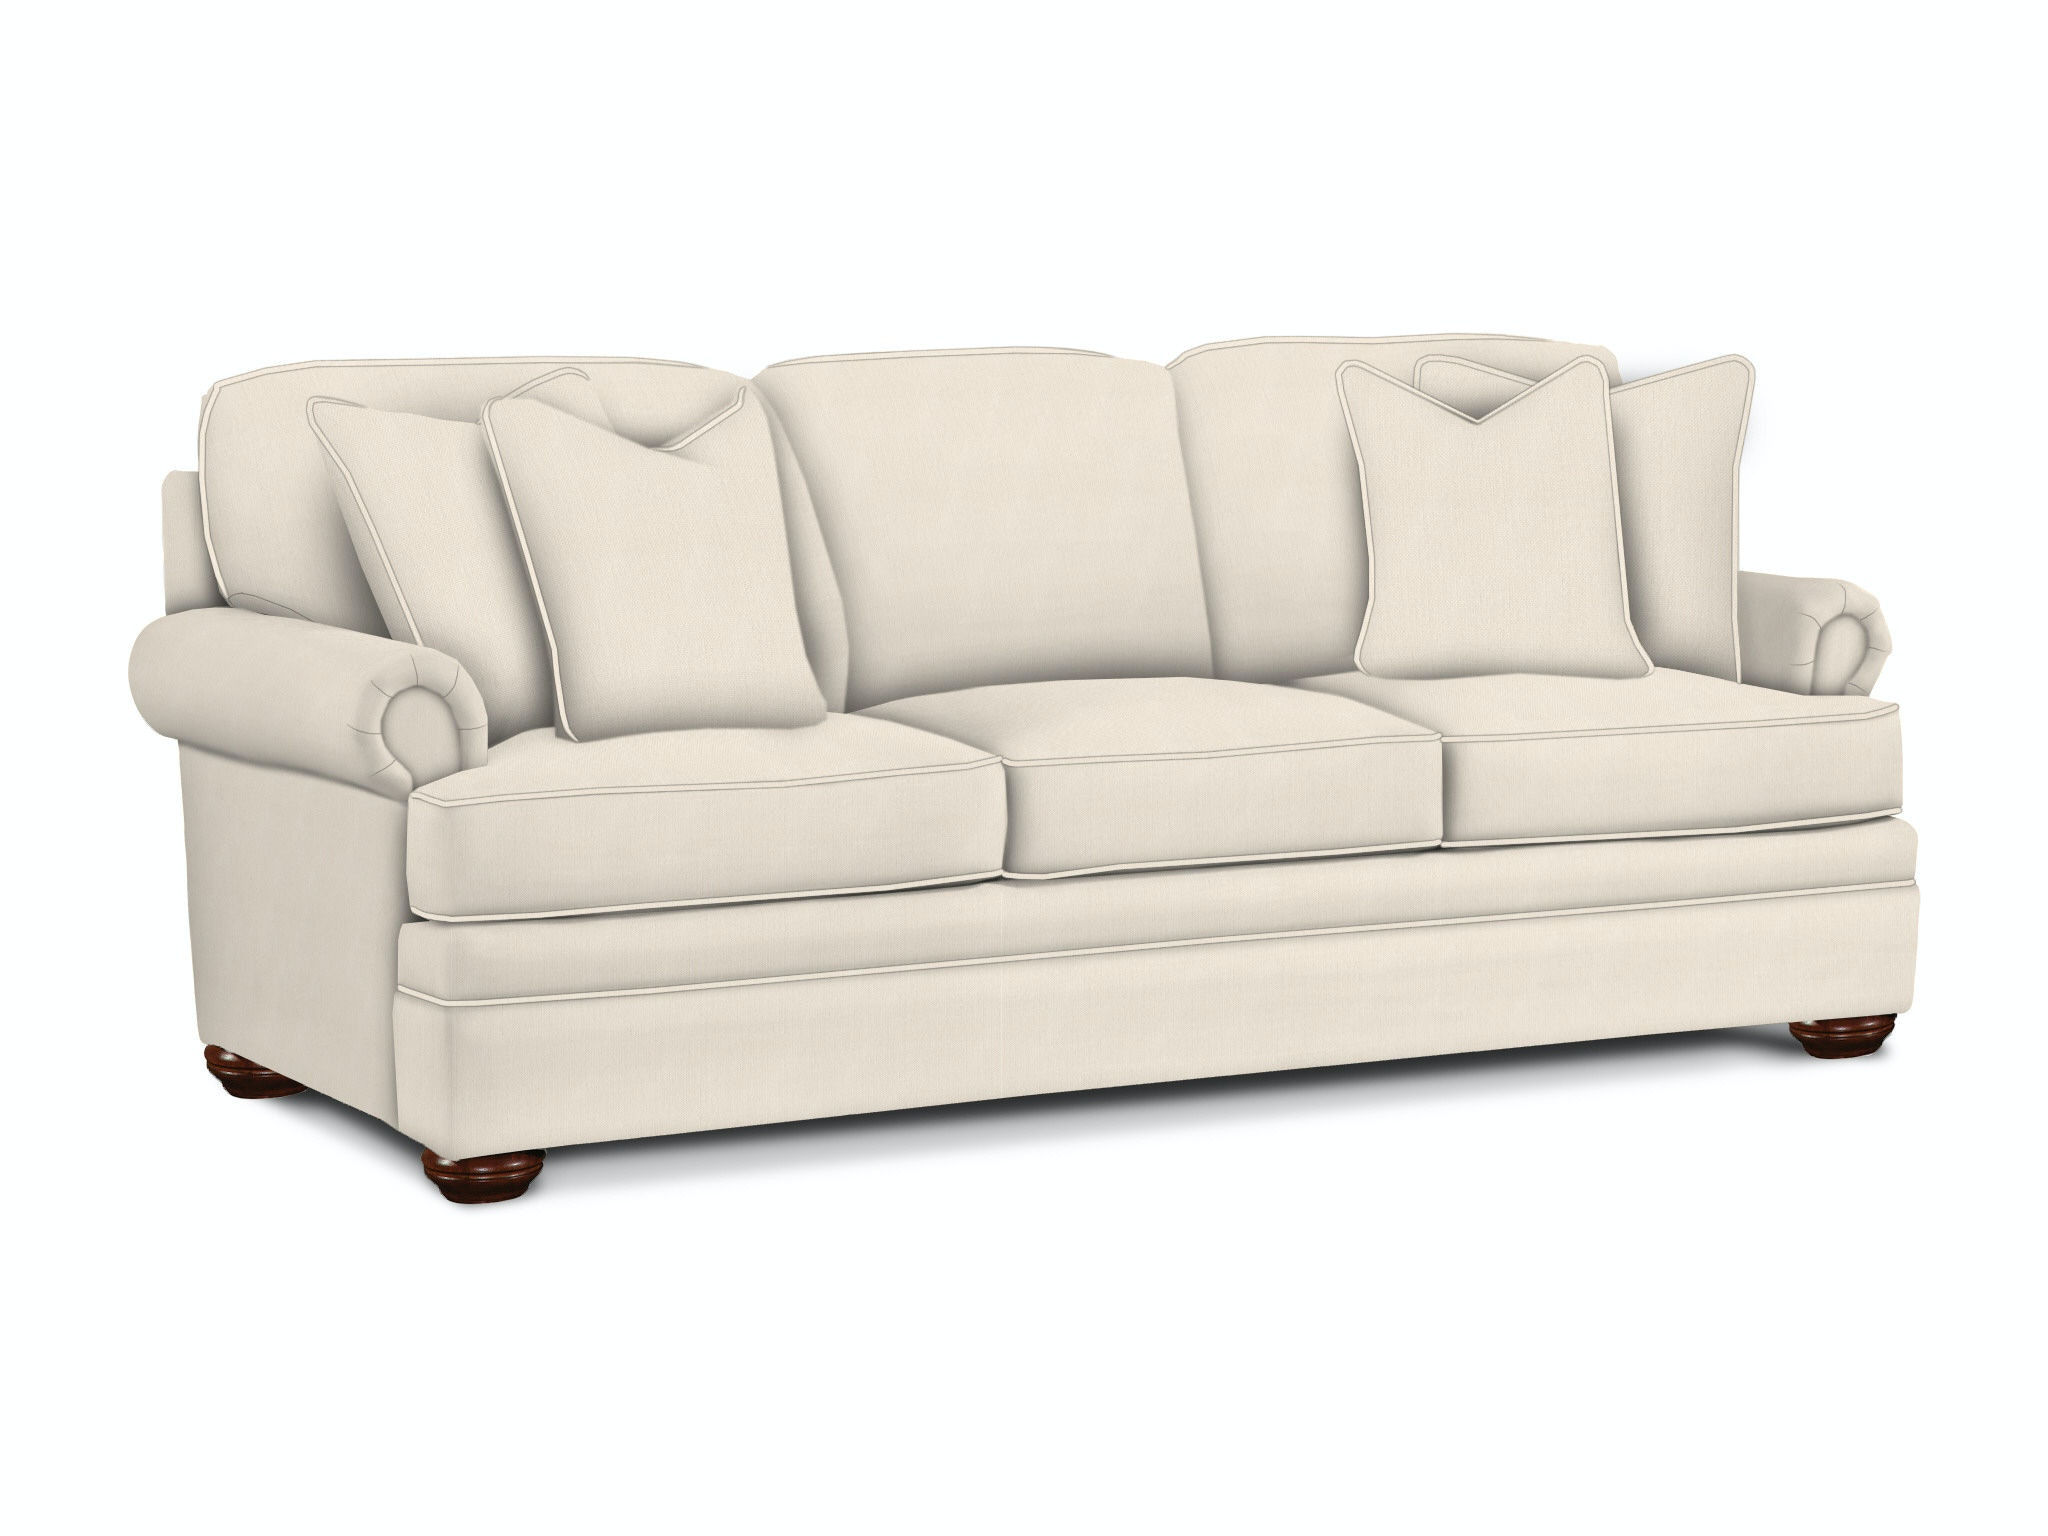 The Braxton Culler Living Room Sofas Is Available In The Sophia, NC Area  From Braxton Culler. Sofas 7111 0110 Braxton Culler